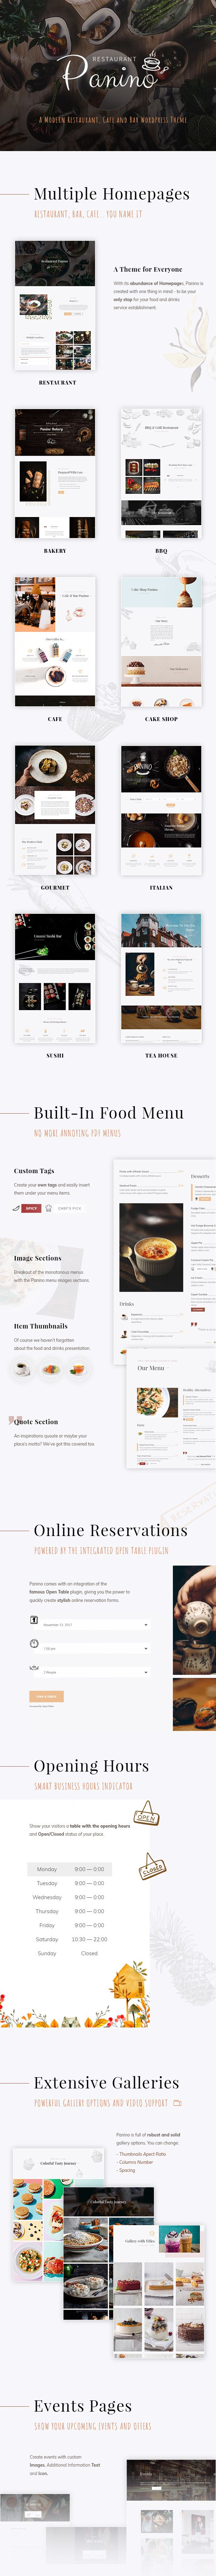 Panino - A Modern Restaurant and Cafe WordPress Theme 5